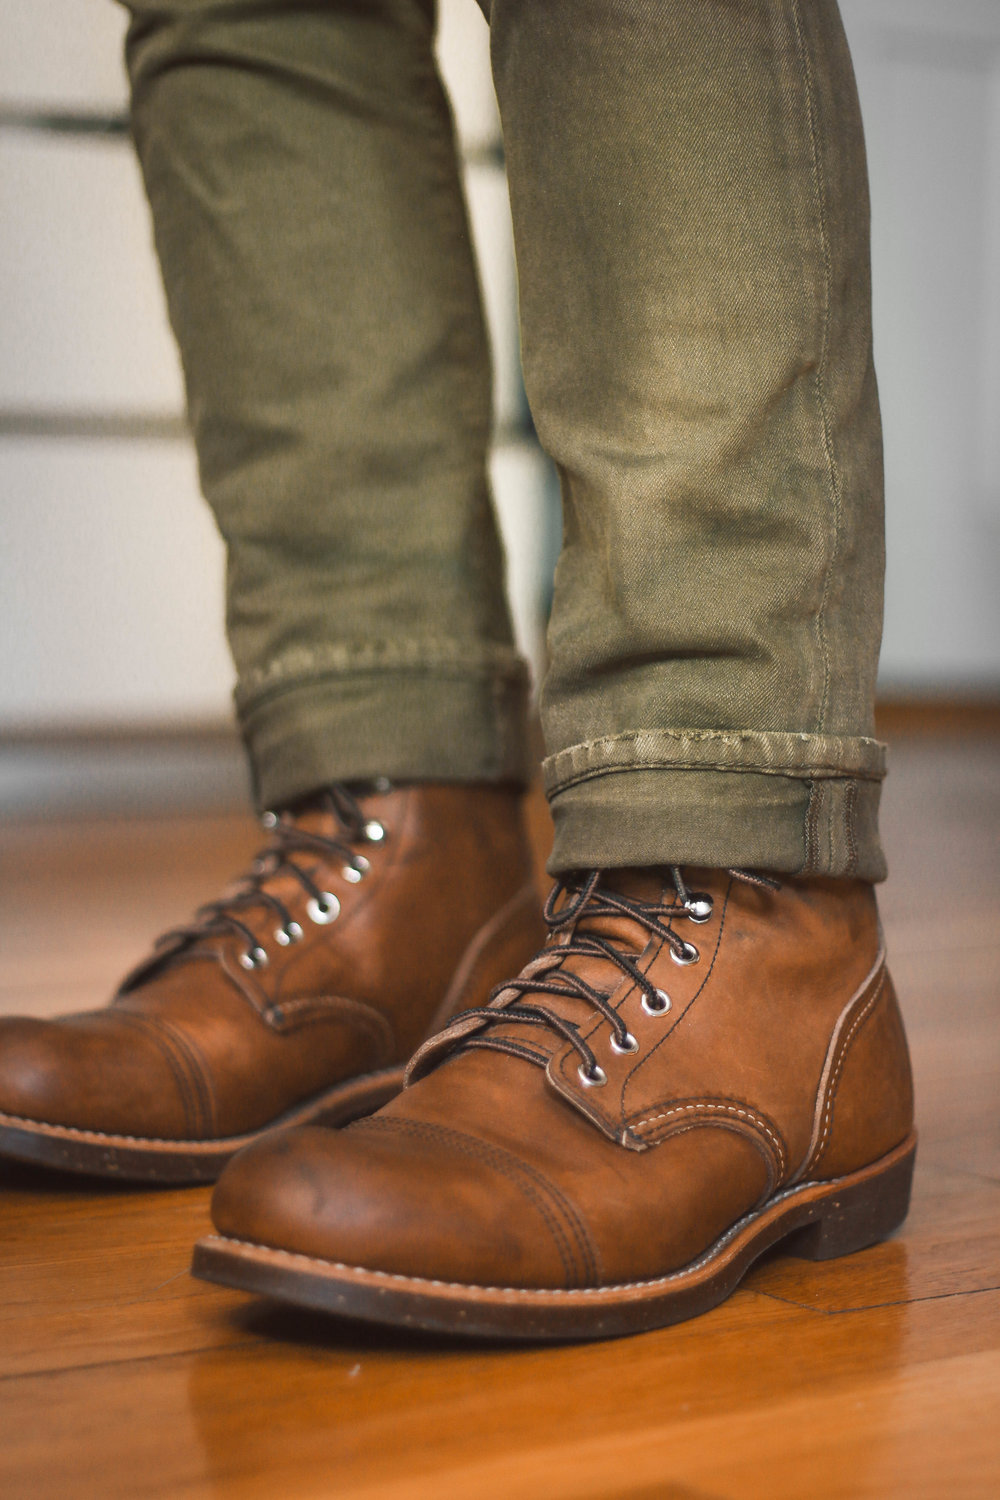 Classic Style - The Iron Rangers go with almost any denim shade and look miliatry-esque with these olive green jeans from RL